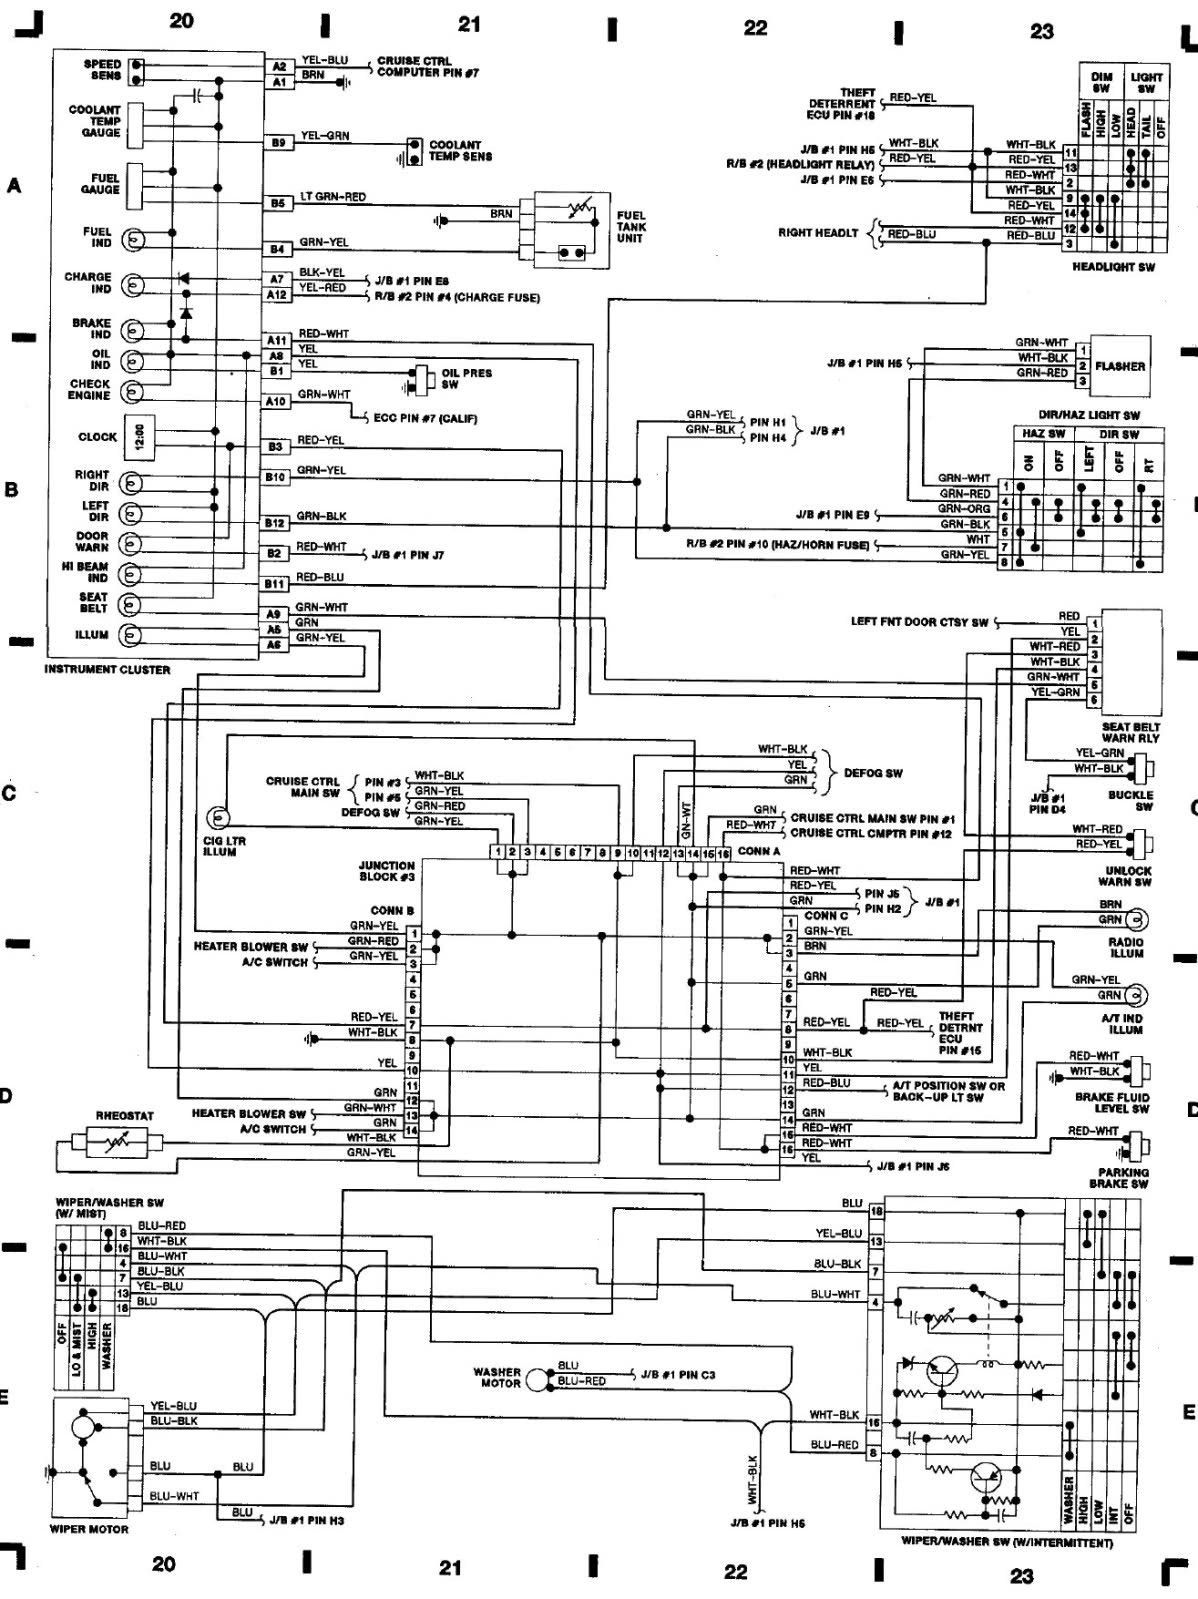 0900c1528004d7fd Toyota Wiring Diagram 9 Natebird Within Toyota 86120 Wiring Diagram Electrical Wiring Diagram House Wiring Electrical Diagram